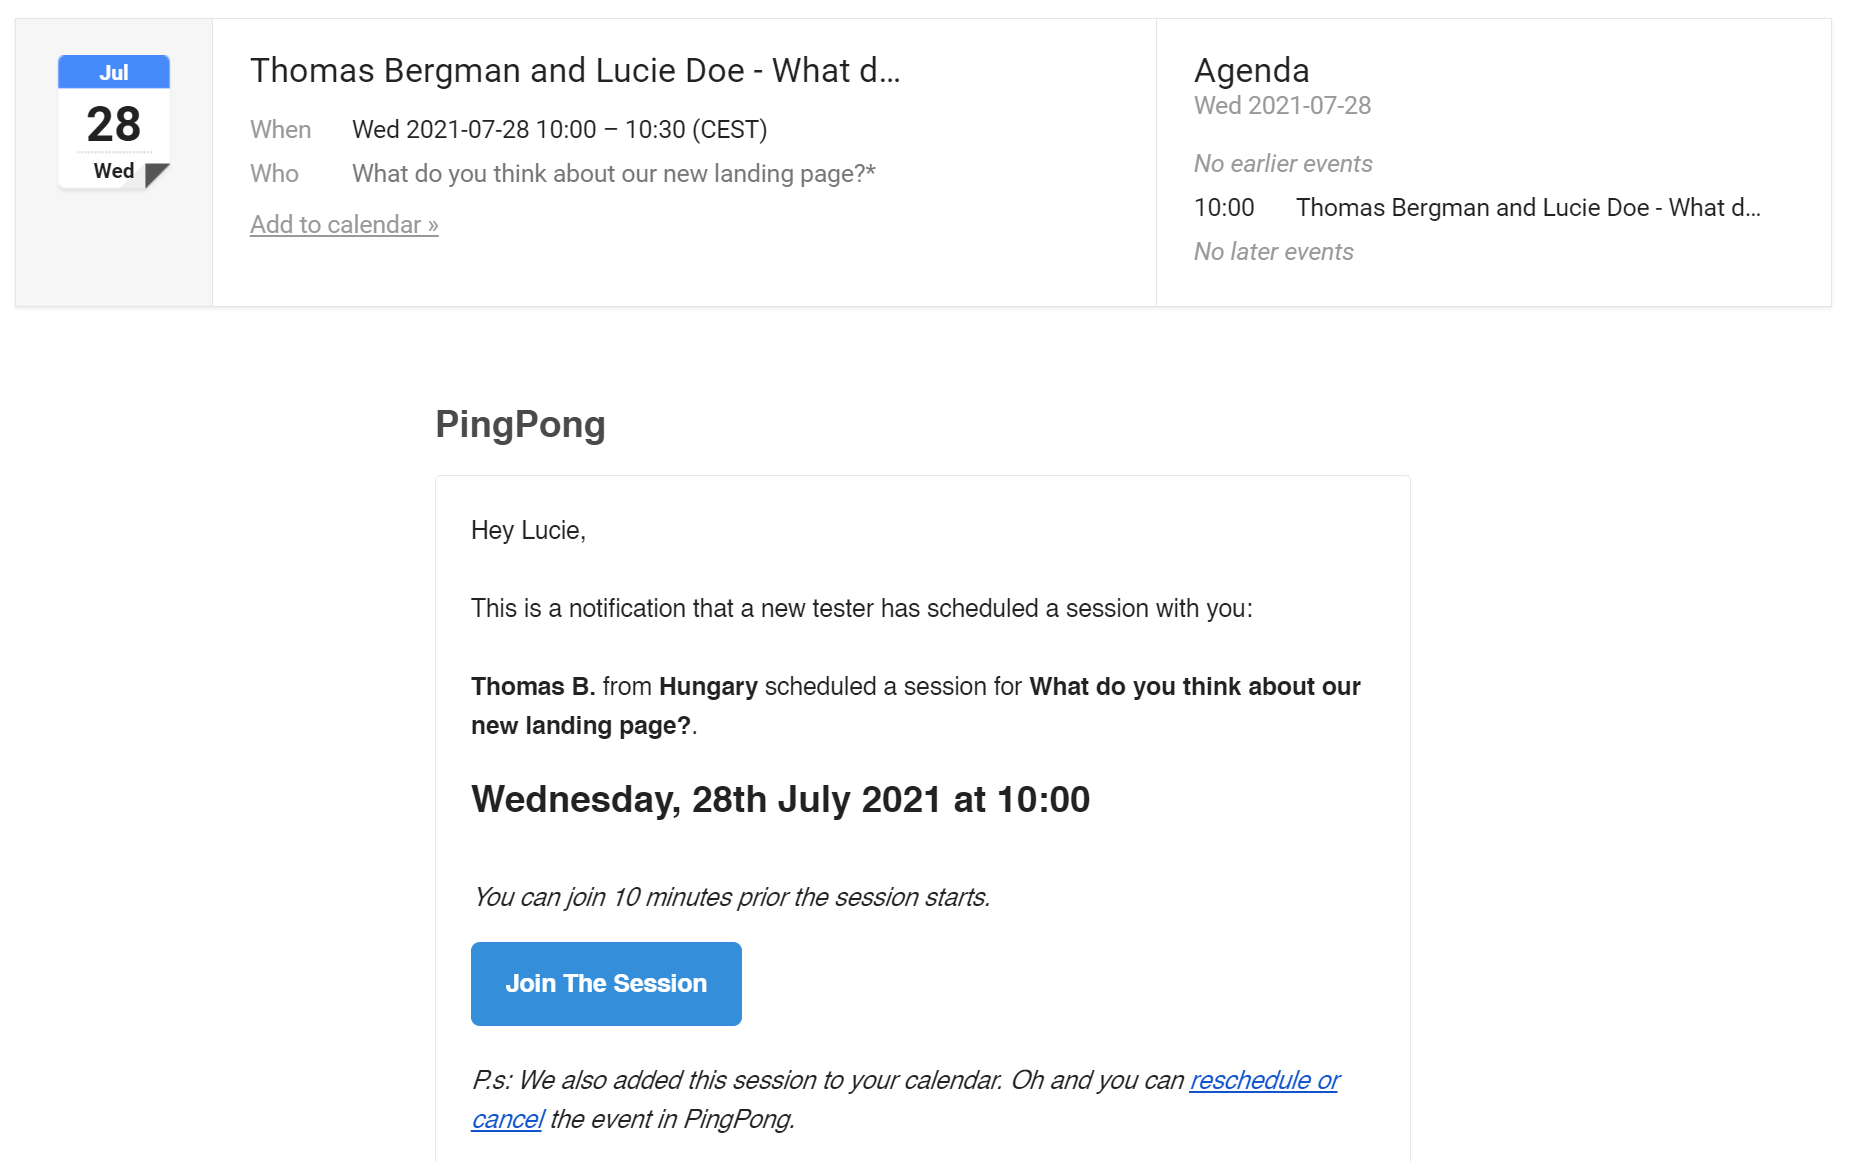 Calendar event invitations included with session confirmation emails